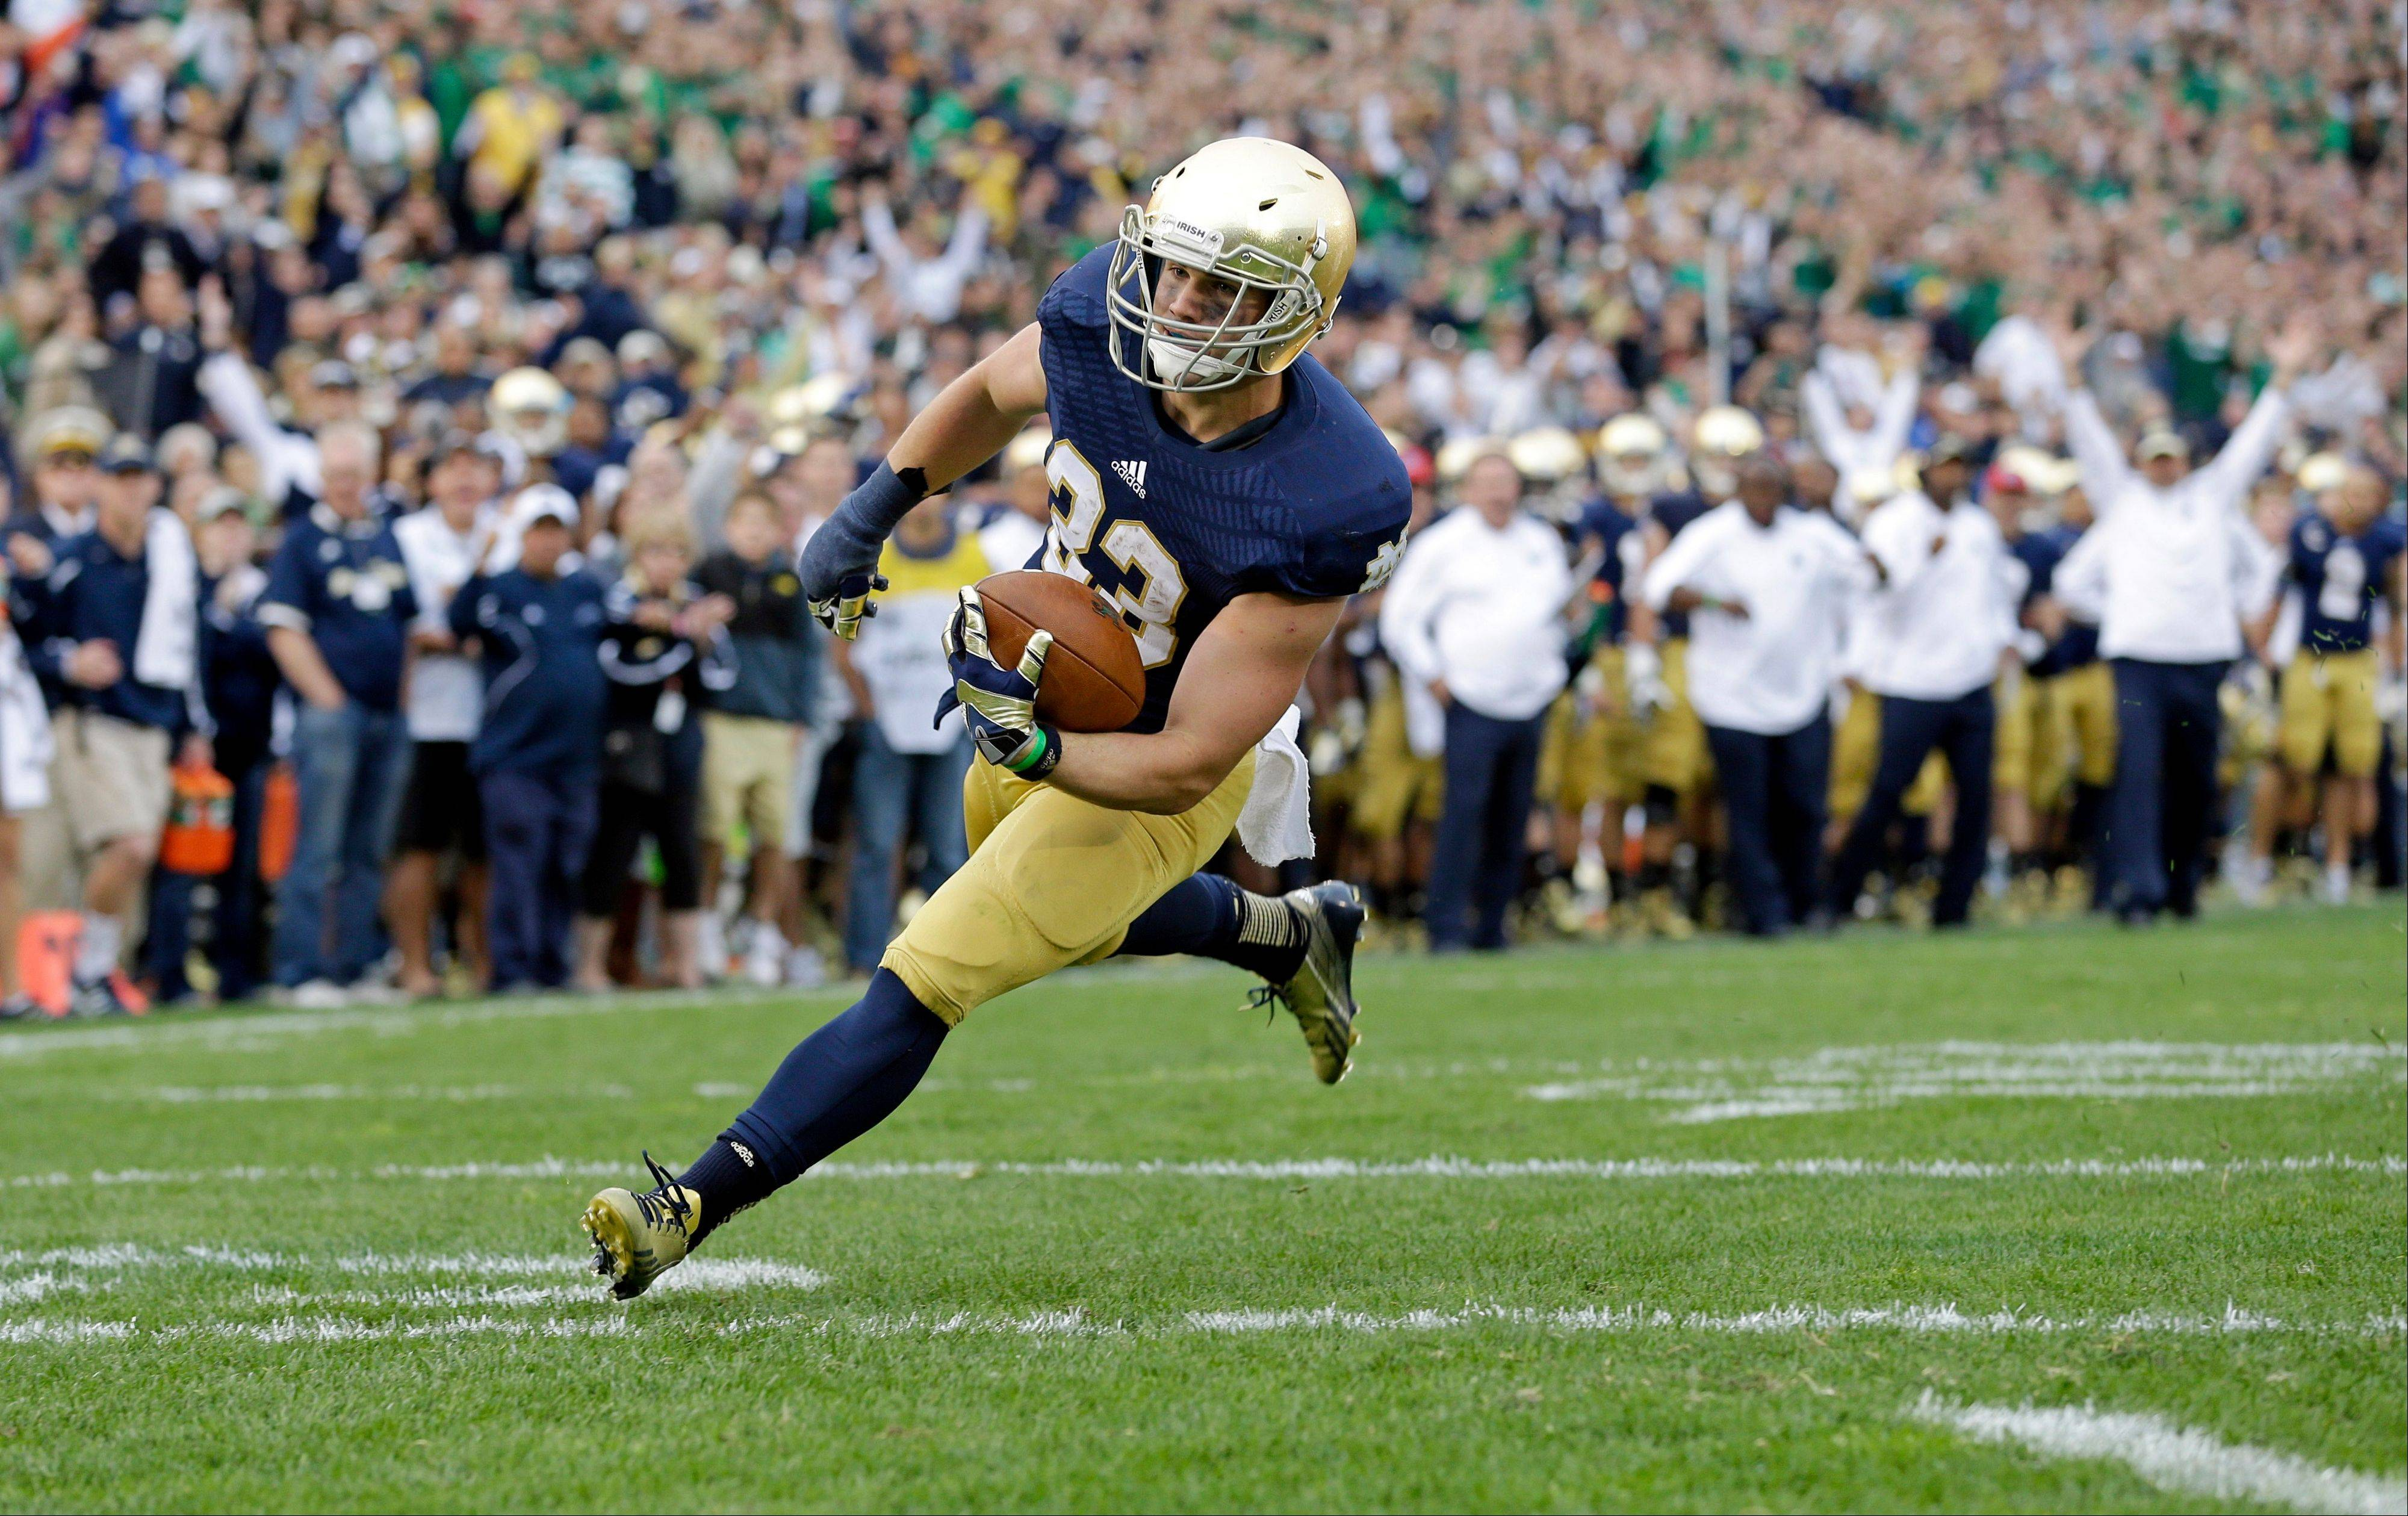 Notre Dame running back Cam McDaniel scores a touchdown against Michigan State during the second half of last Saturday�s game in South Bend, Ind. The Irish face No. 14 Oklahoma this weekend.